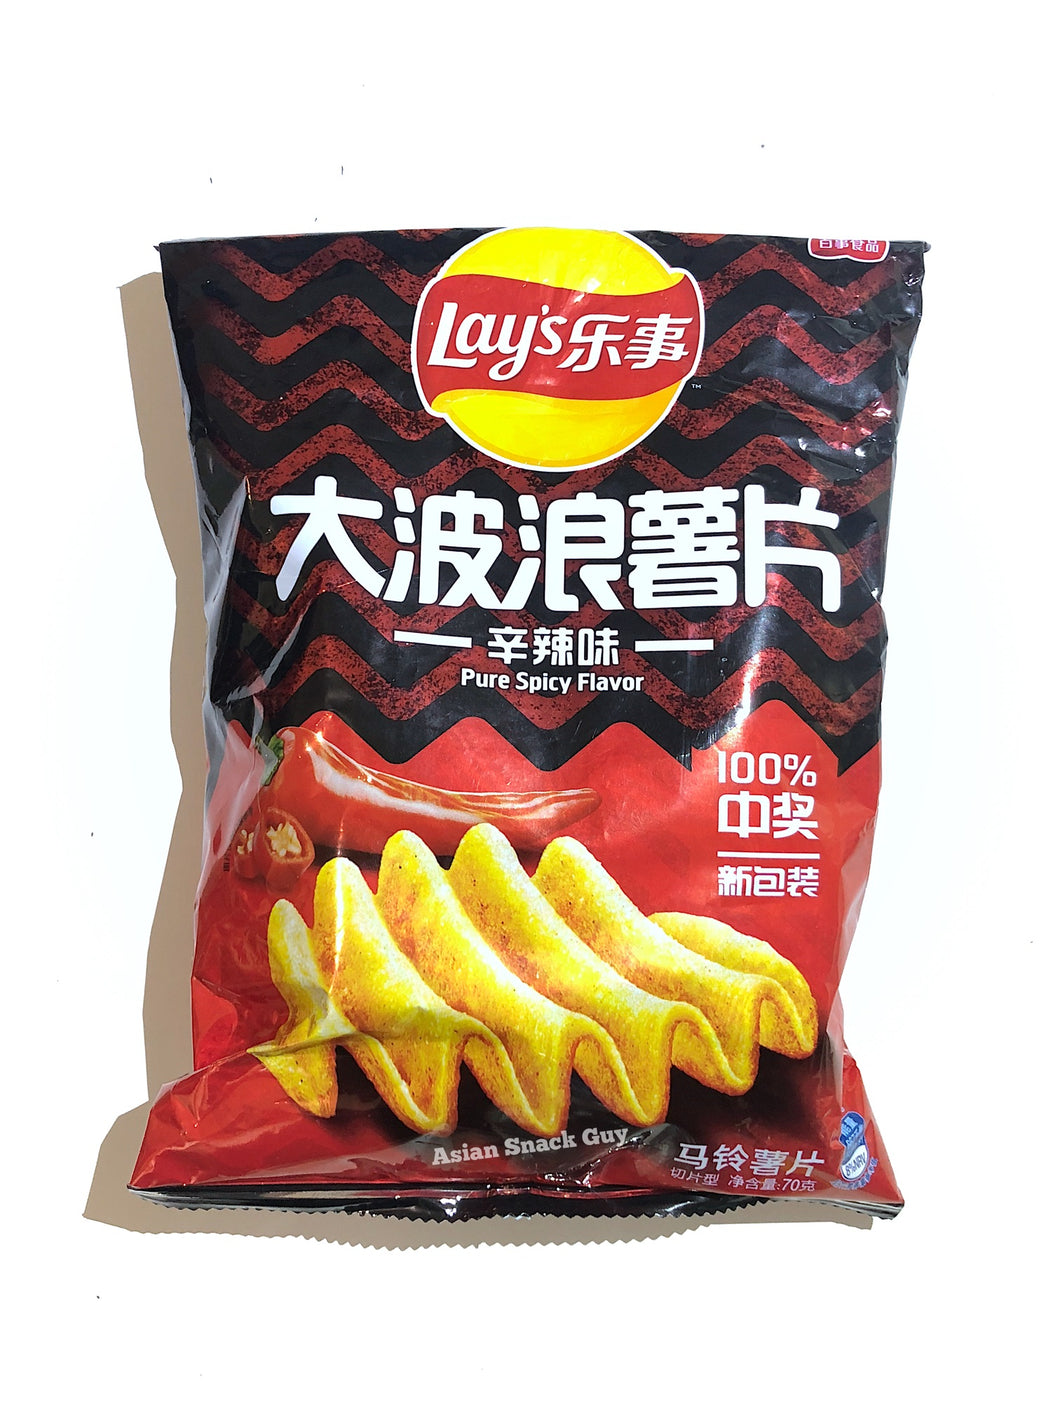 [New] Lays Pure Spicy Flavor Potato Chips